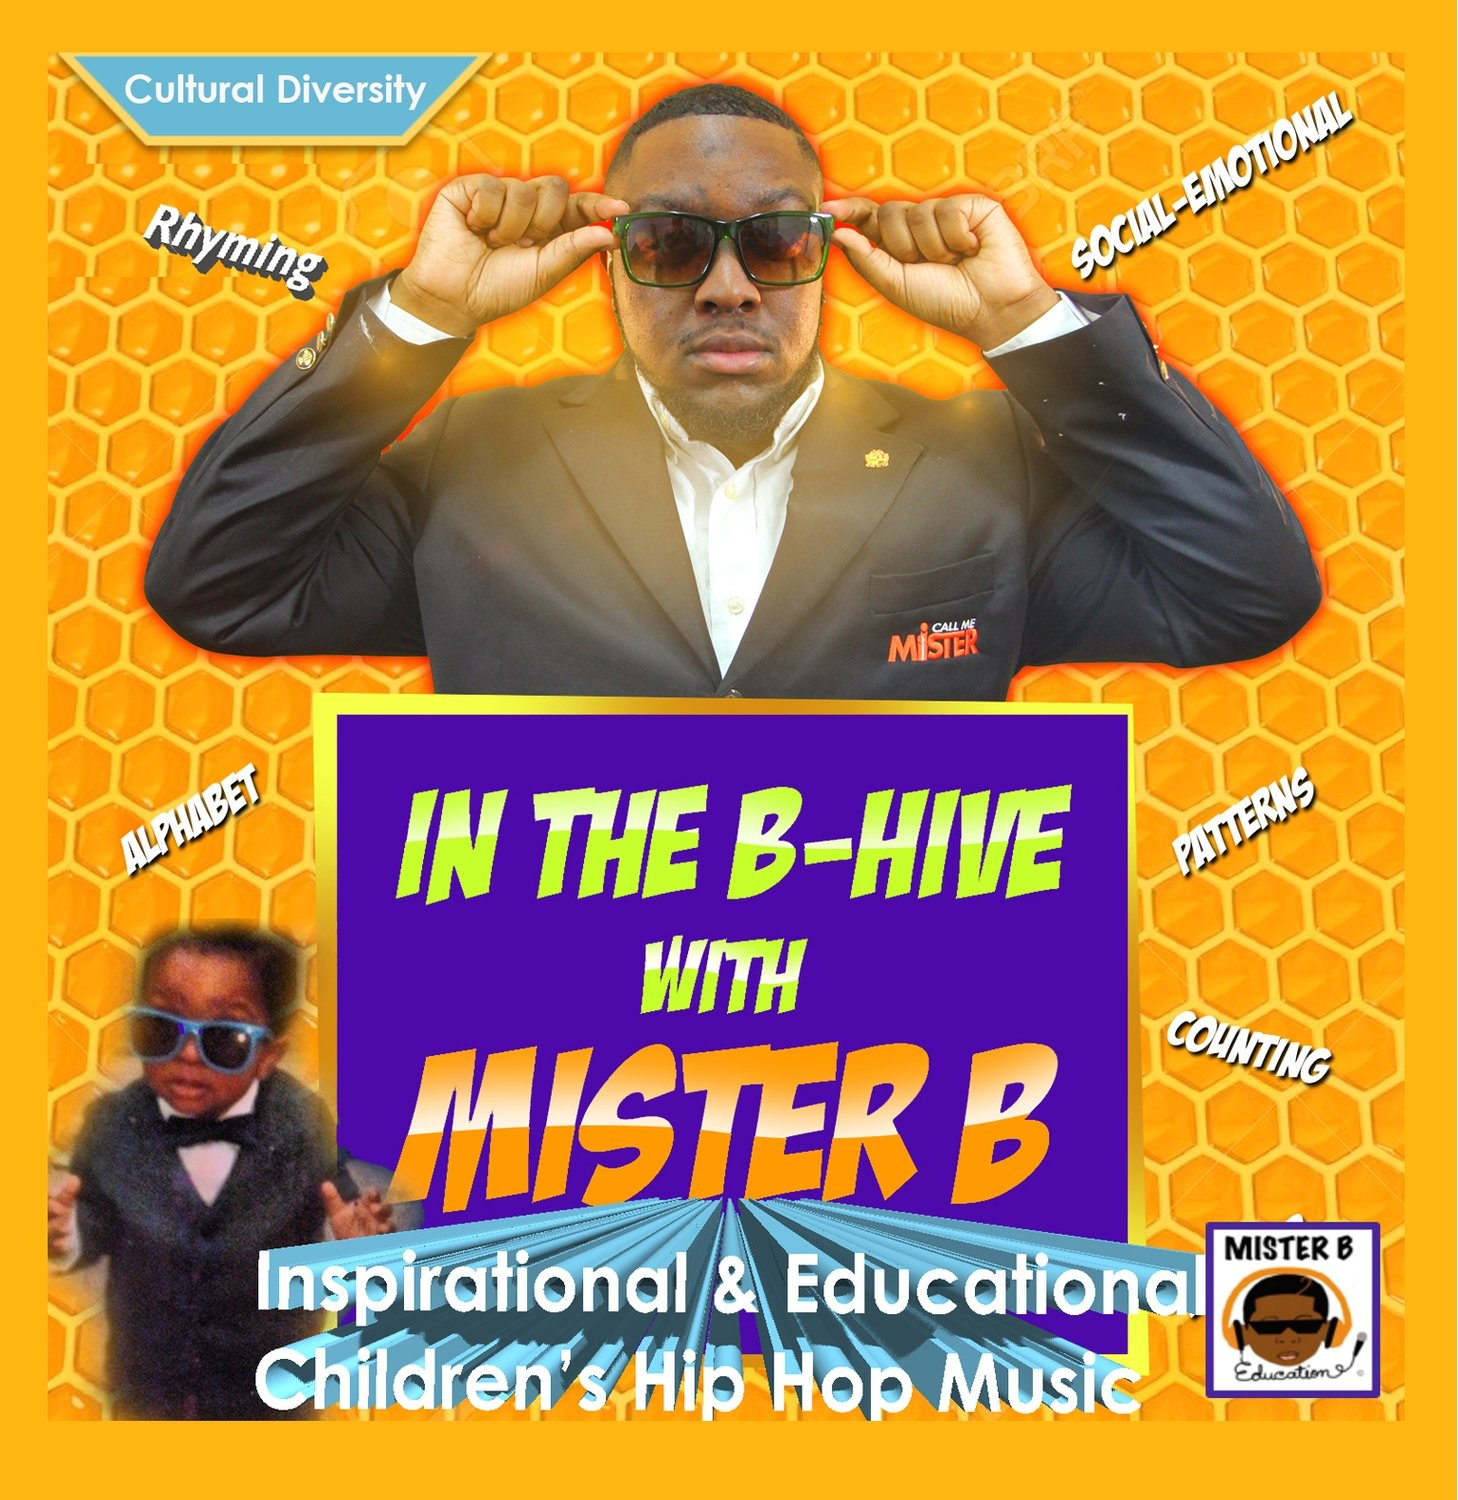 CD 1: In the B-Hive with MISTER B